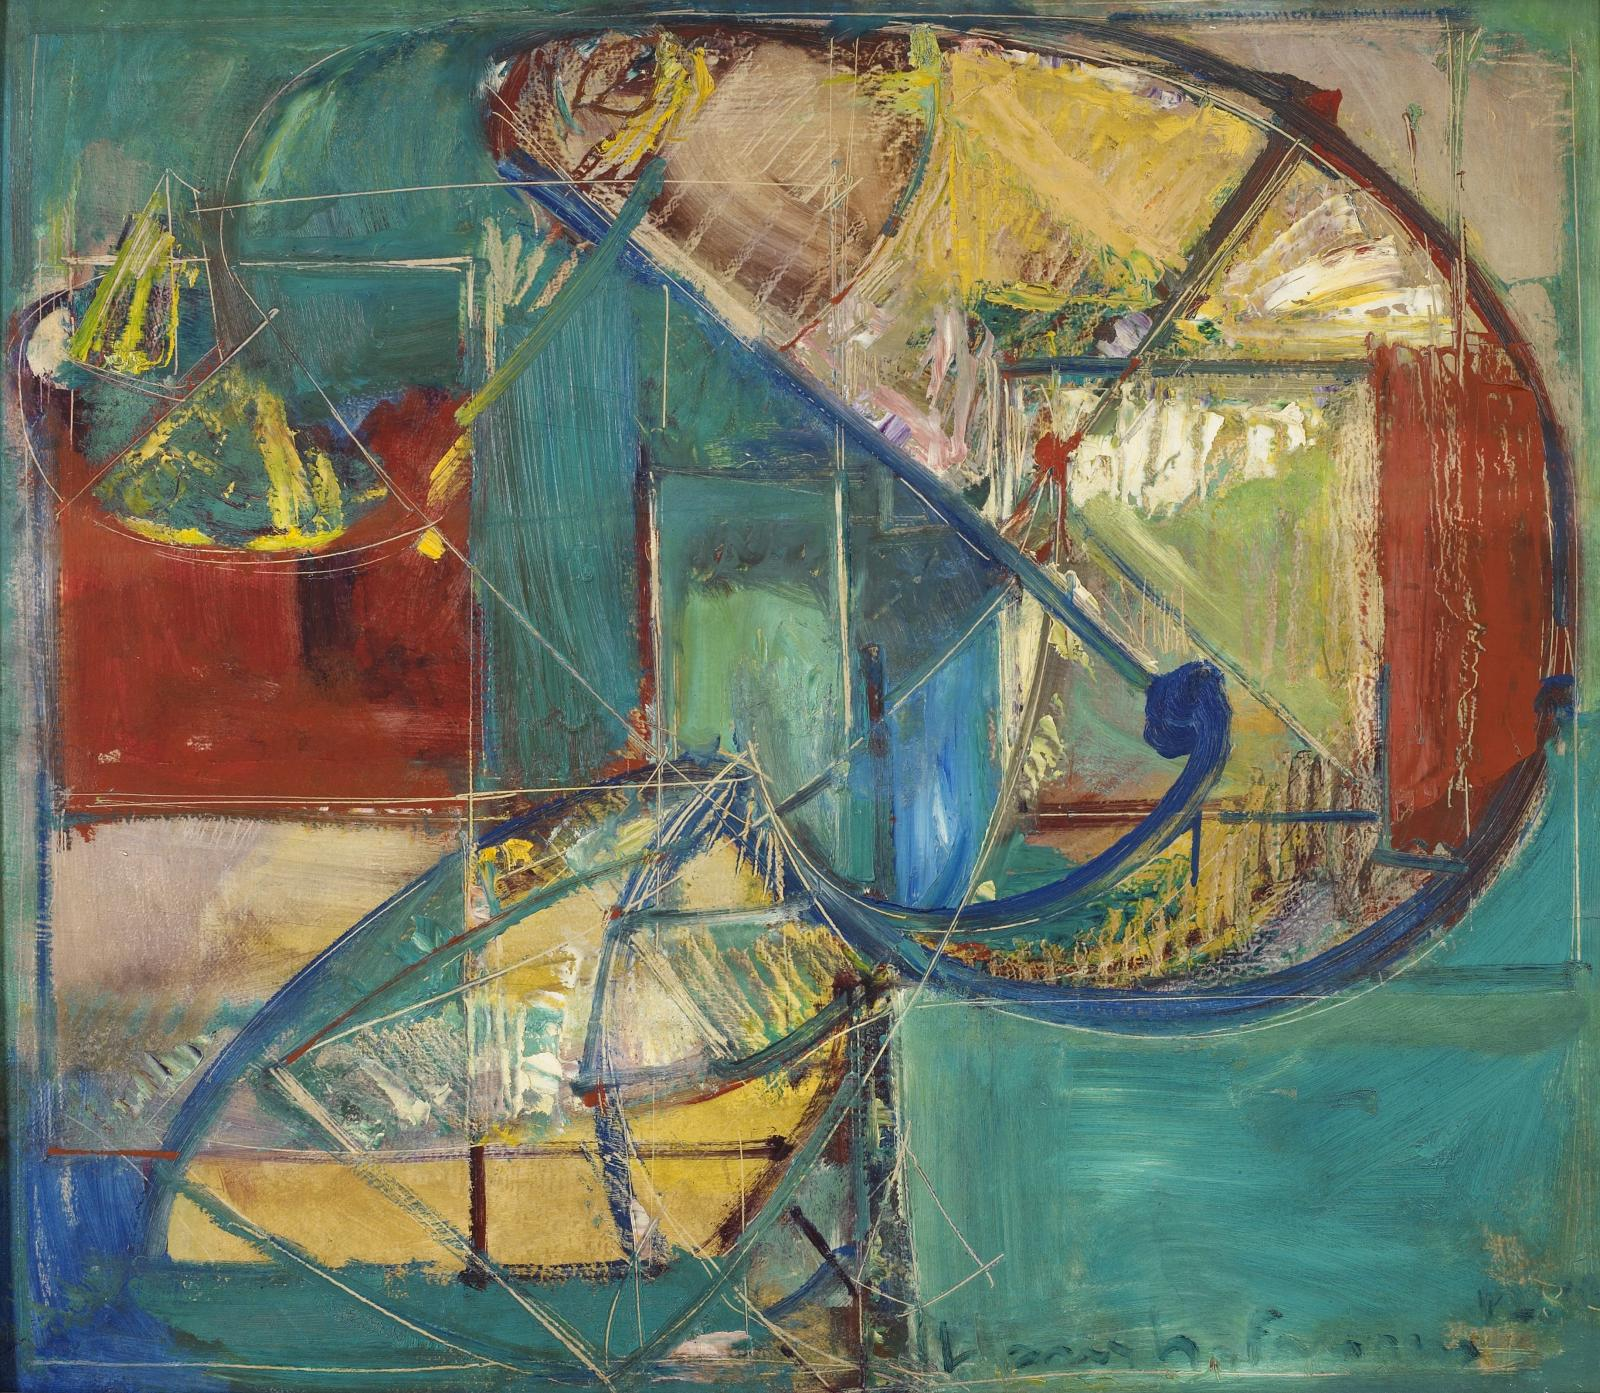 Composition No. 43